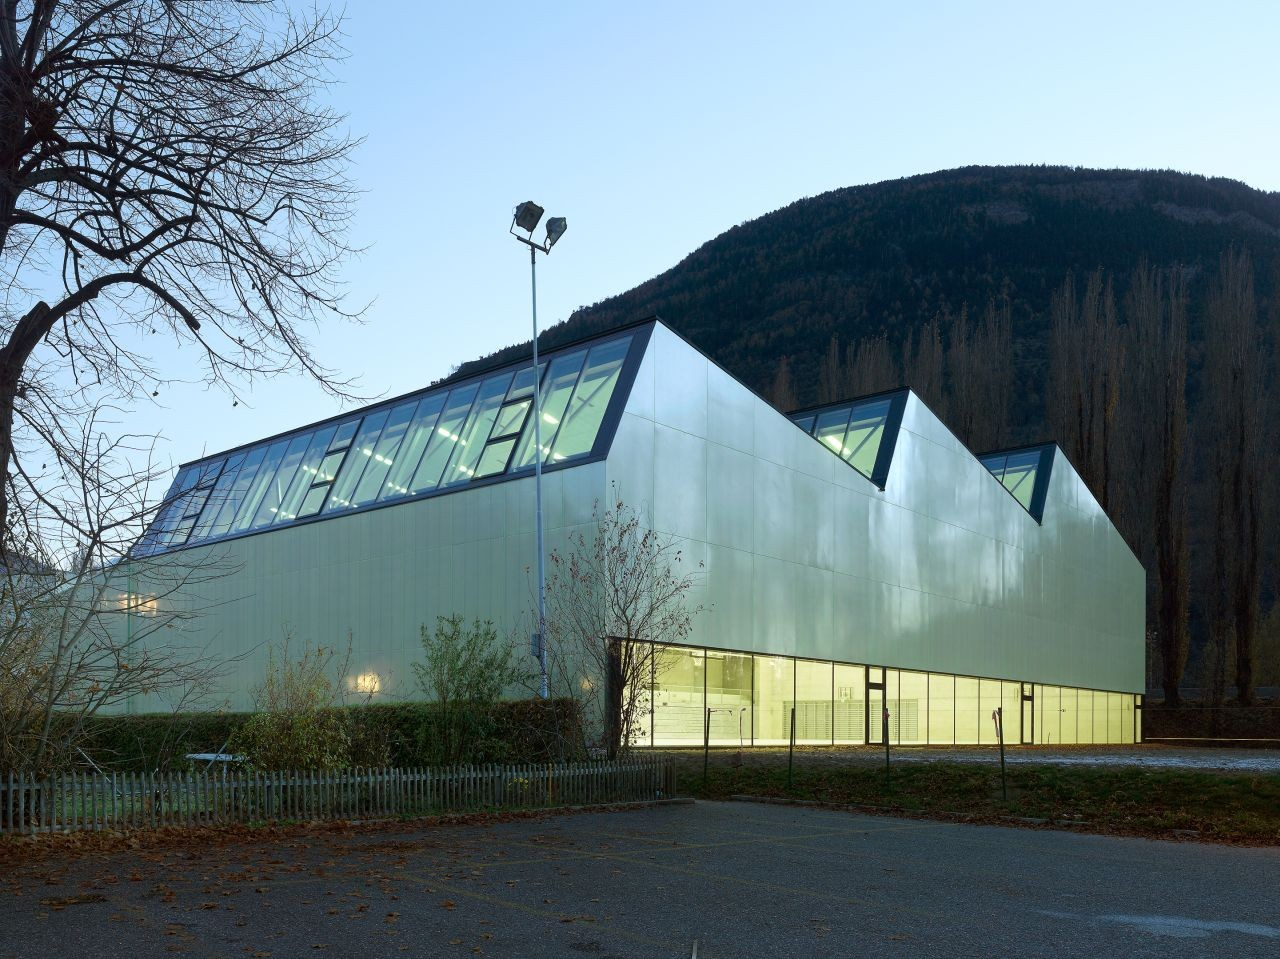 Three-In-One Sports Center / Savioz Fabrizzi Architectes, © Thomas Jantscher